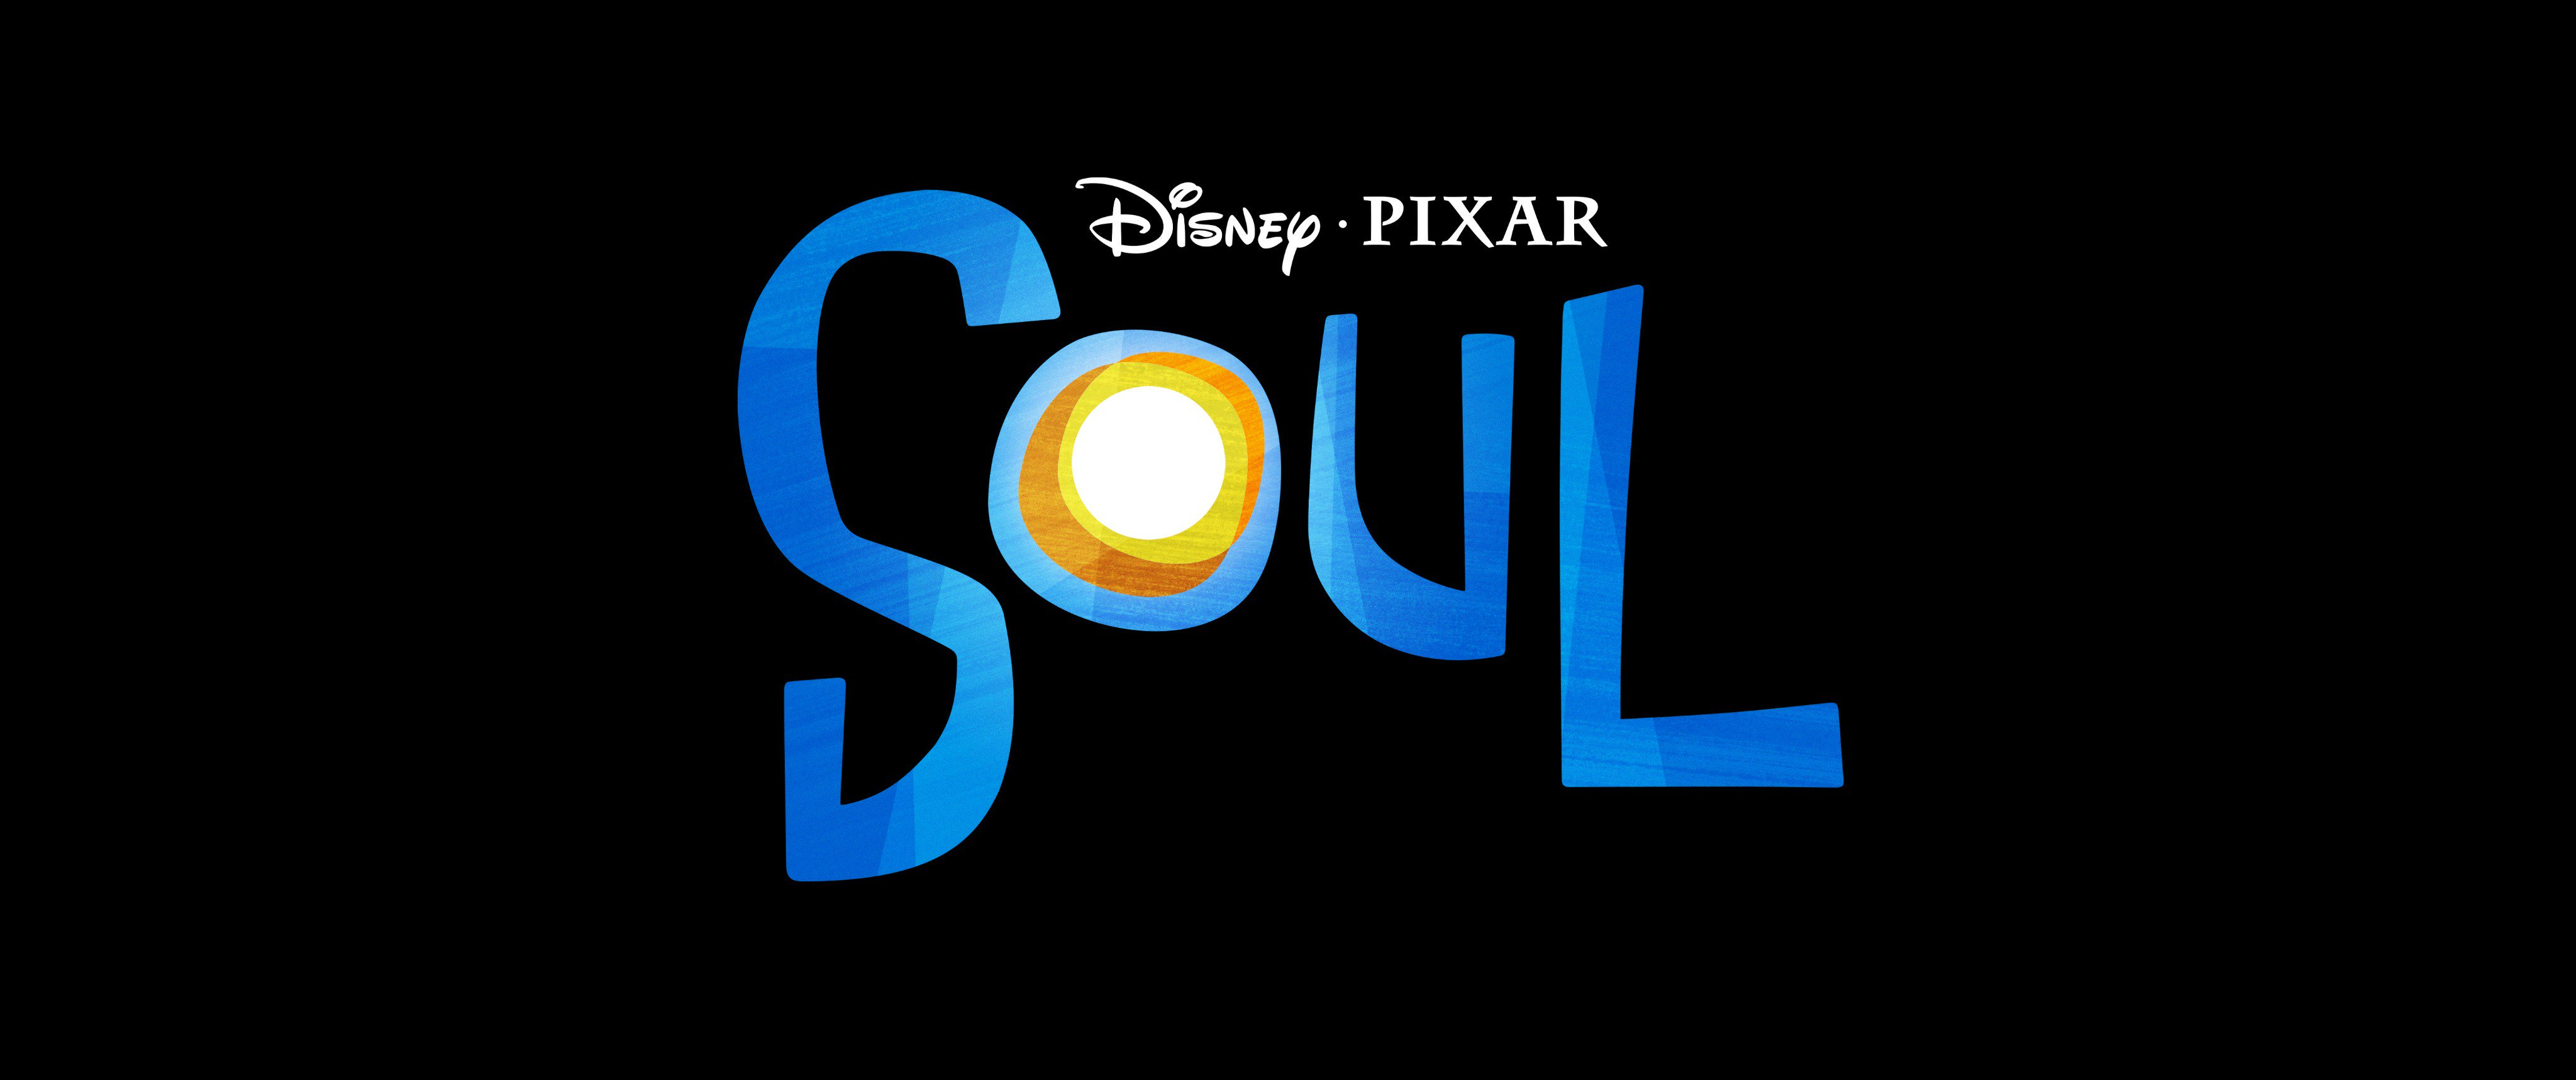 All Upcoming Disney Movies: New Disney Live-Action, Animation, Pixar